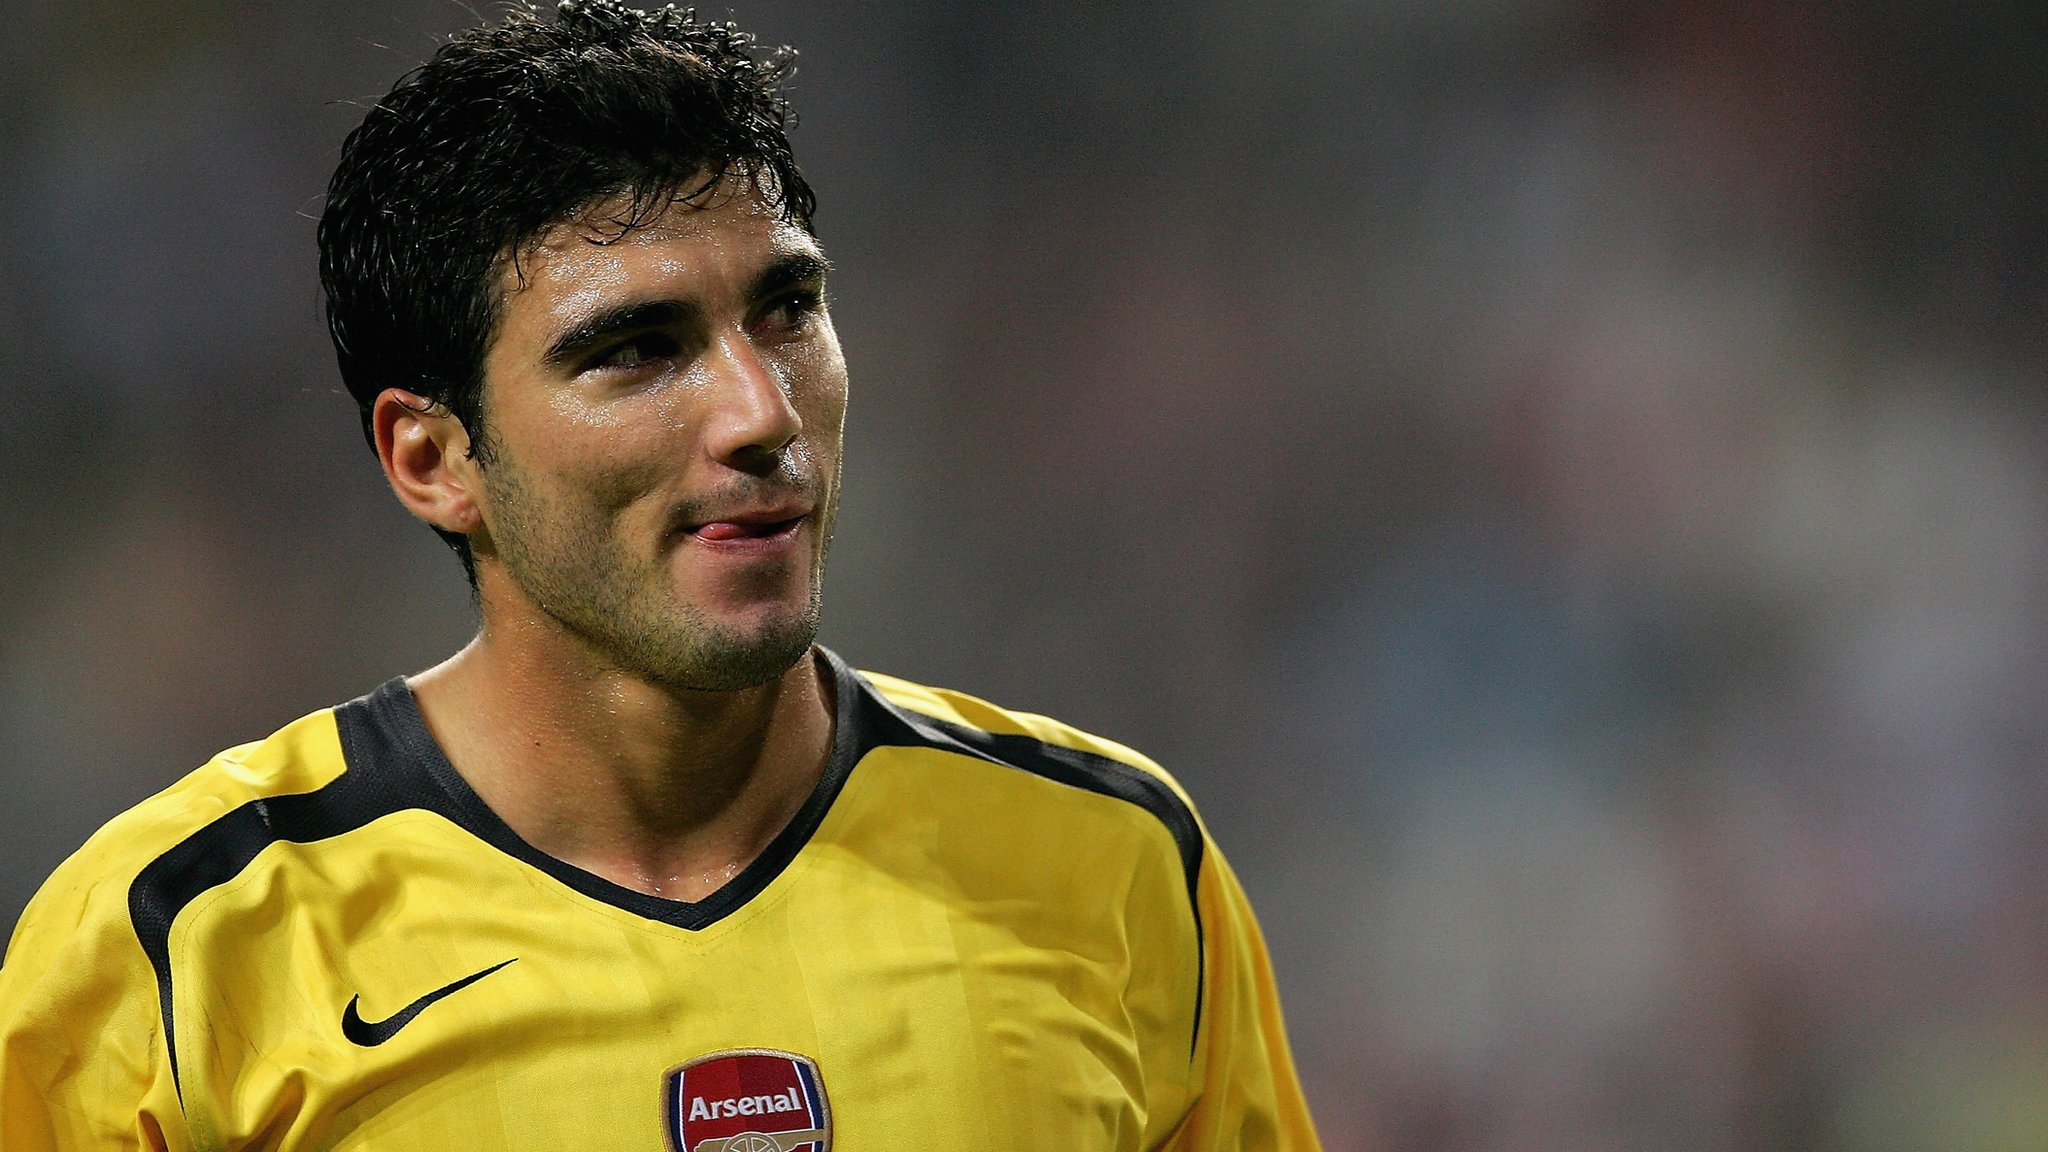 Jose Antonio Reyes: Former Arsenal winger joins Extremadura in Spain's second tier